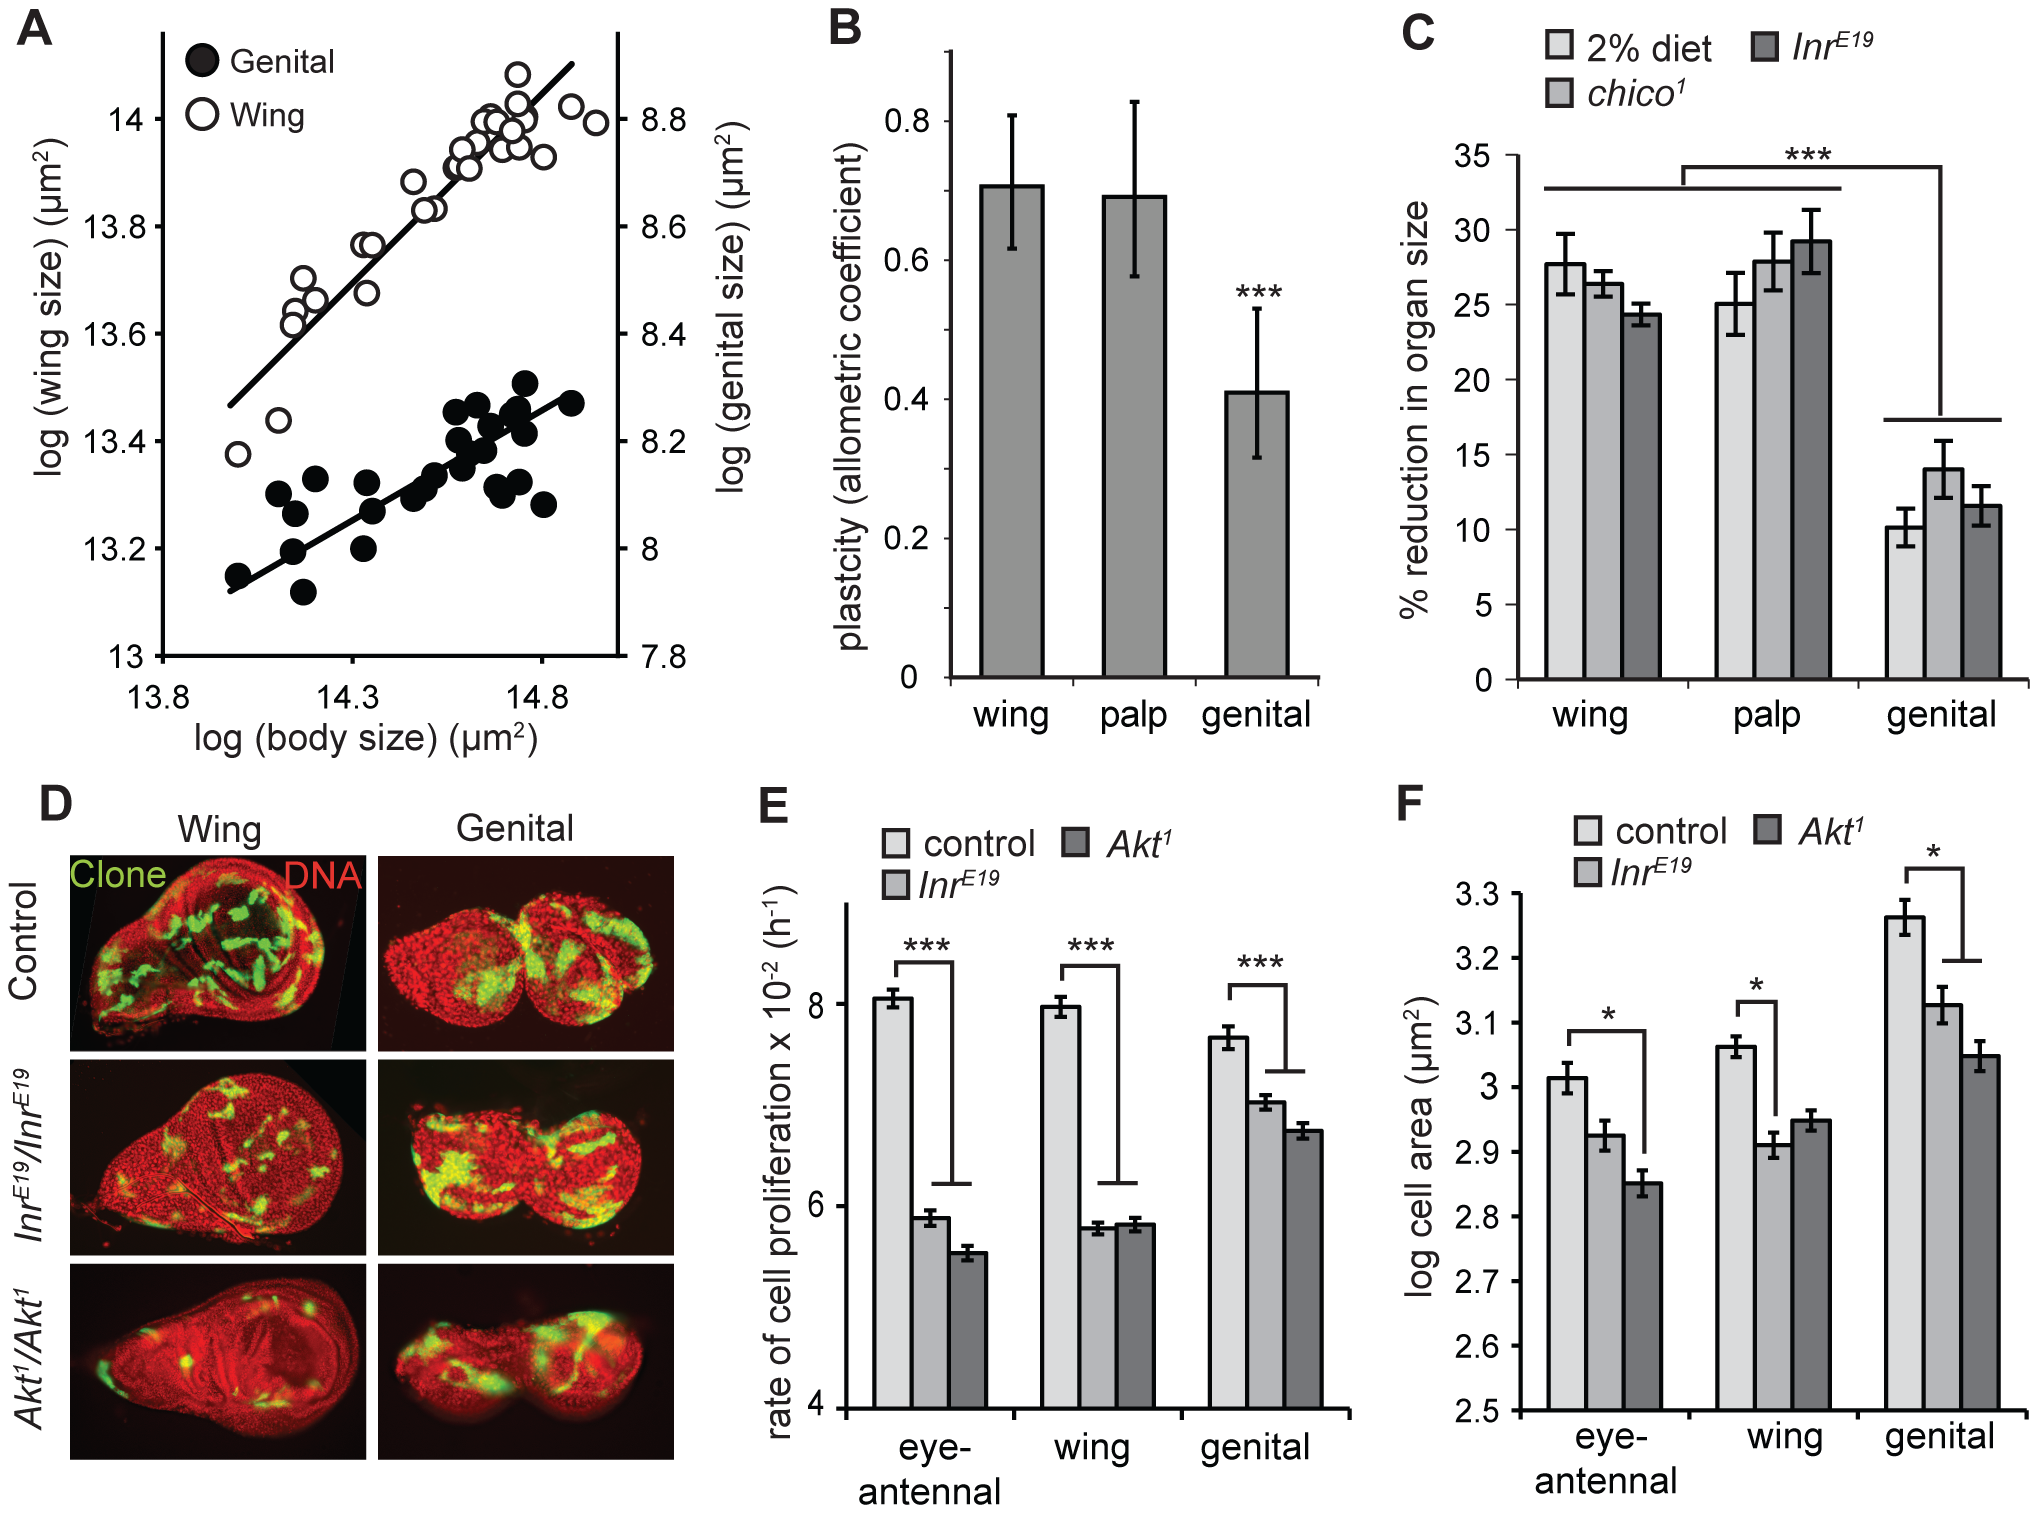 The genitalia of male <i>Drosophila</i> are nutrition- and insulin-insensitive.